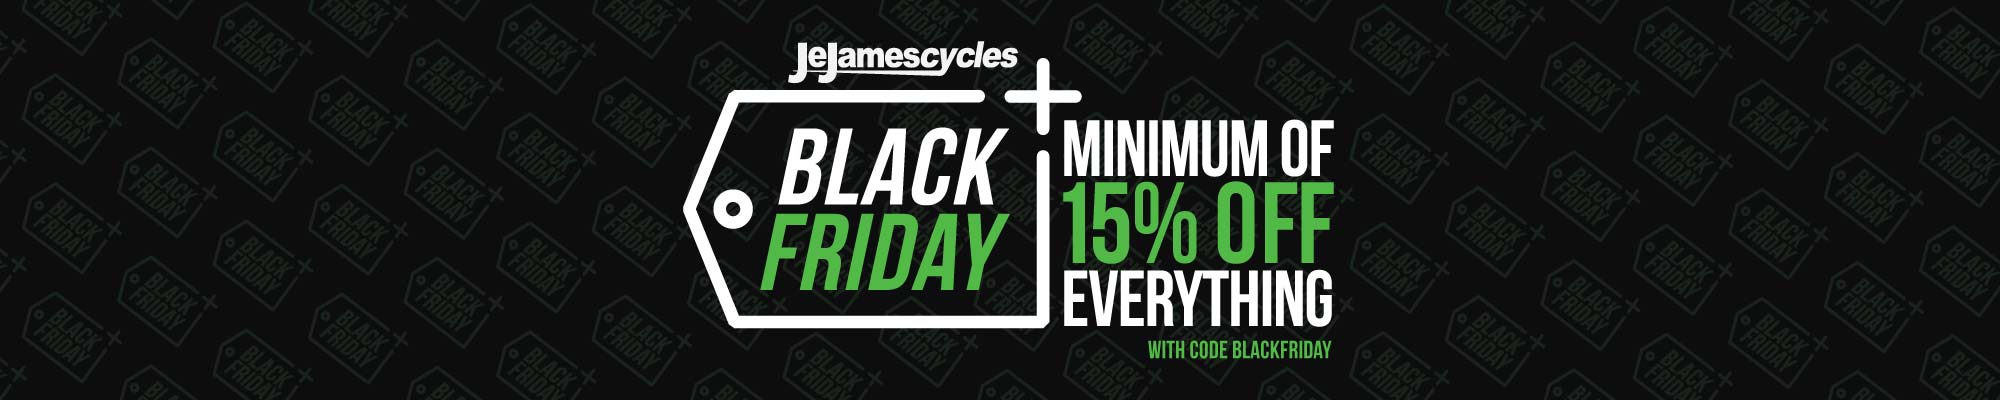 Je James Black Friday